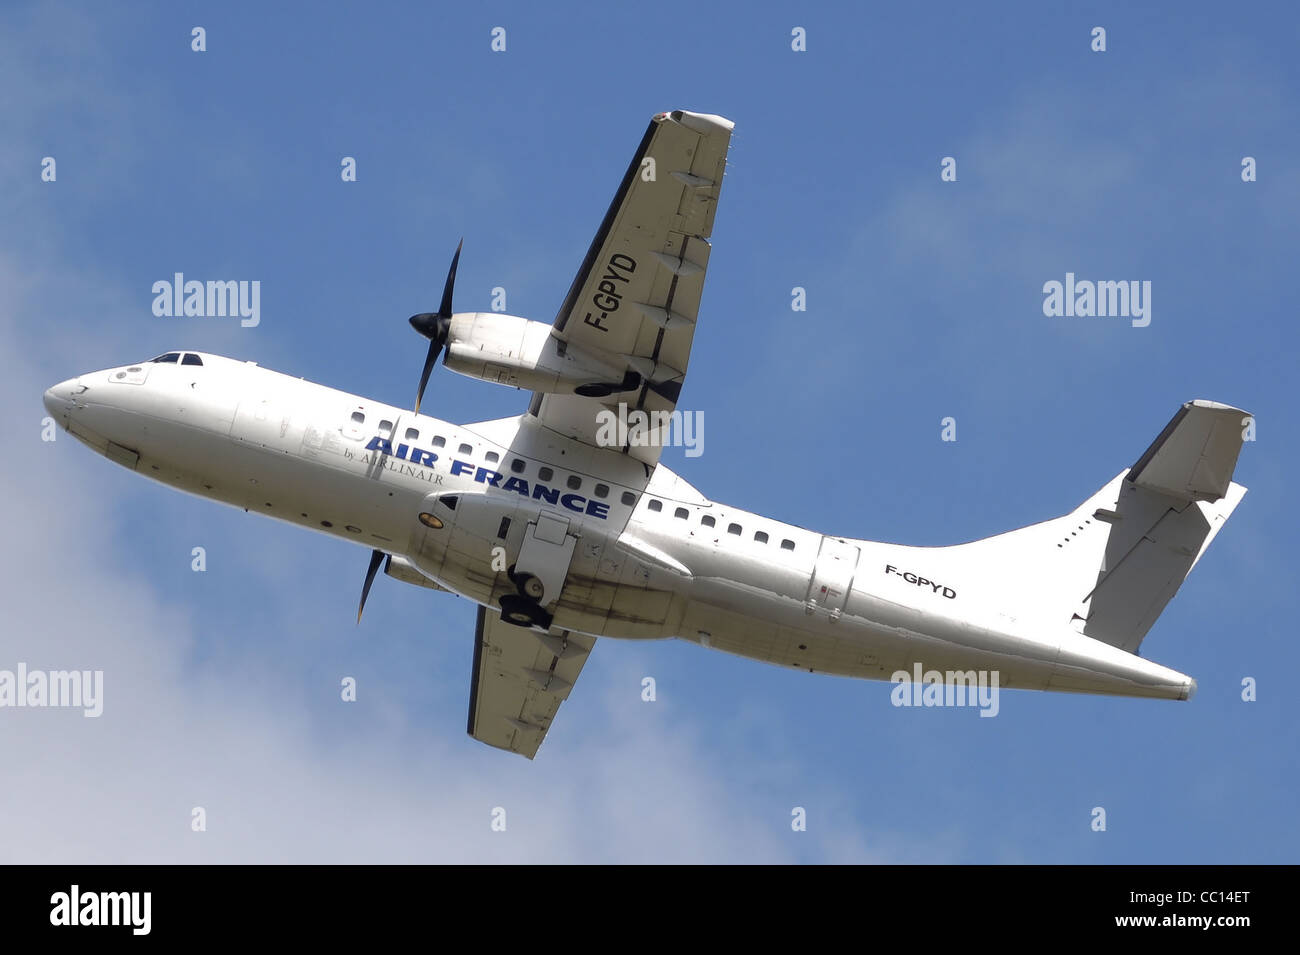 Air France ATR-42-500 (F-GPYD), operated on behalf of Air France by the airline Airlinair, takes off from Bristol - Stock Image